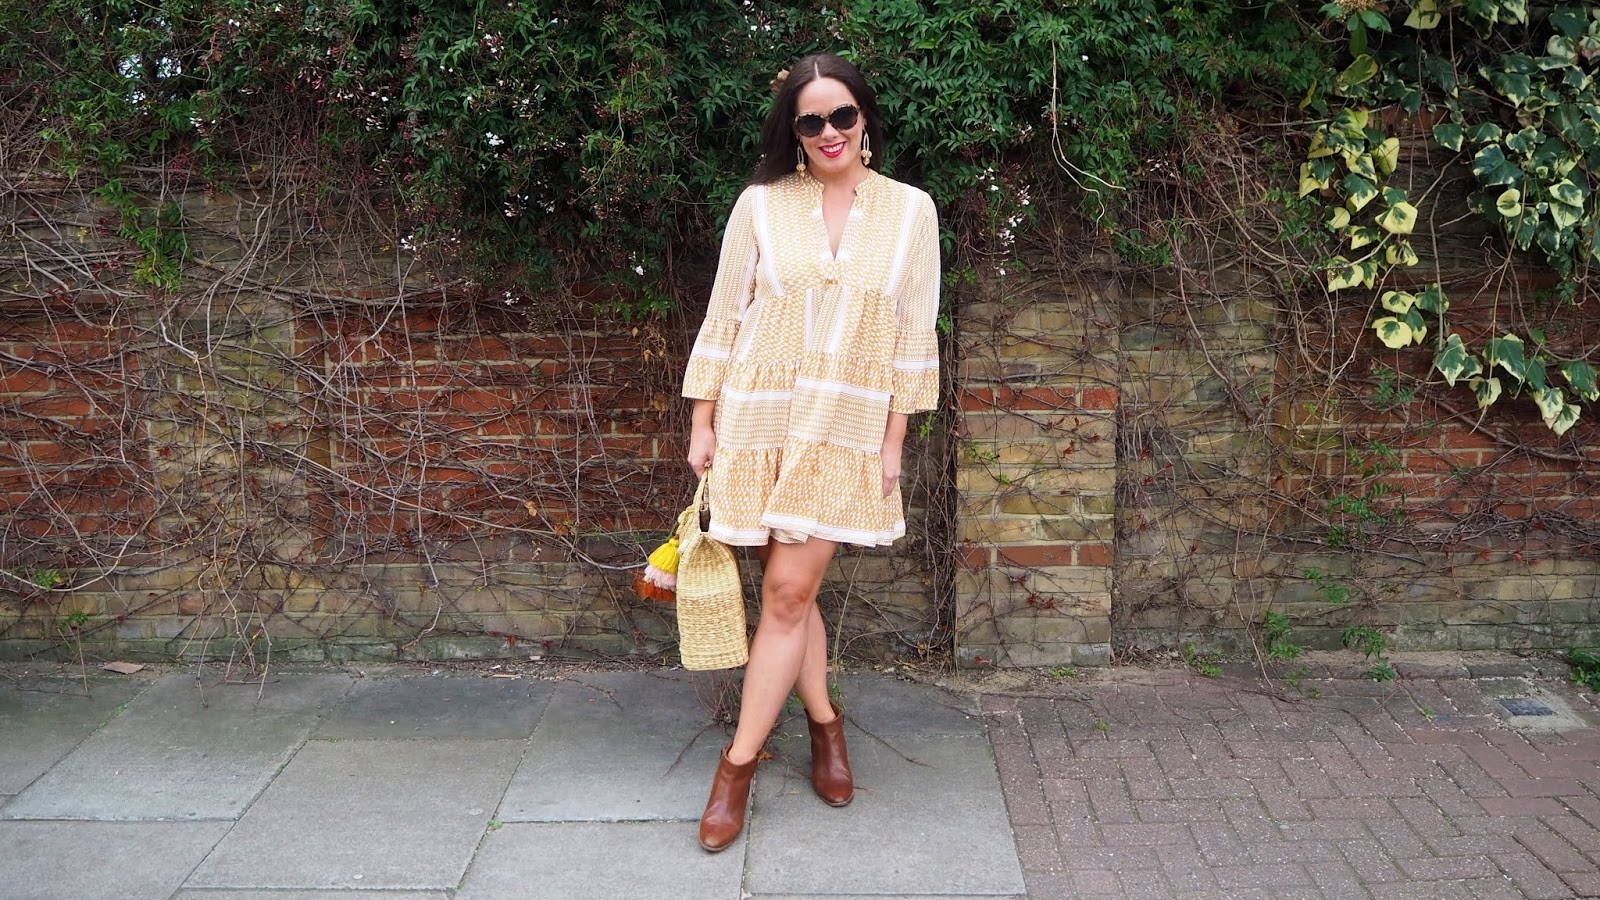 Yellow and white print smocked dress with brown boots and straw bag